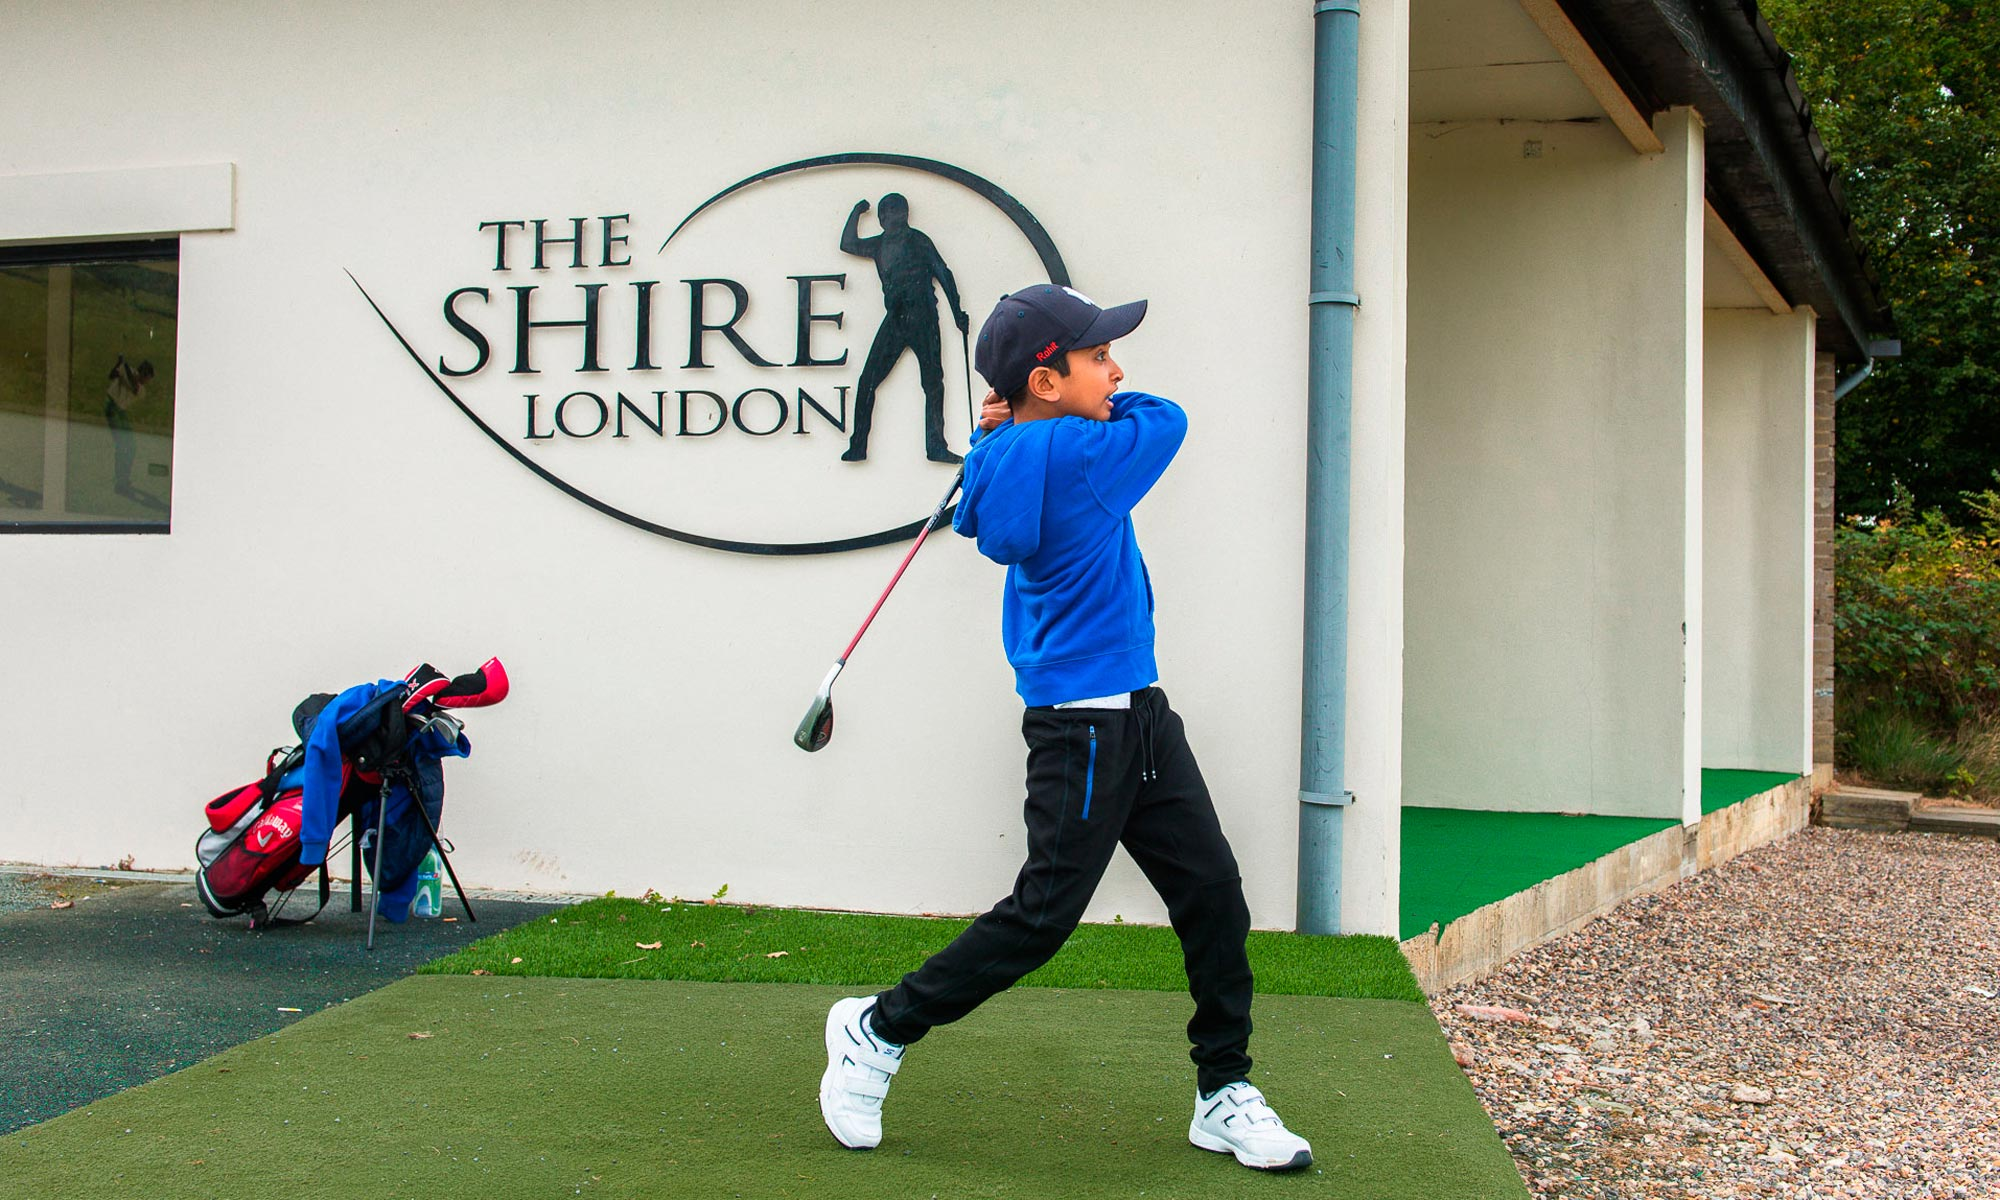 Young golfer at the driving range at The Shire London